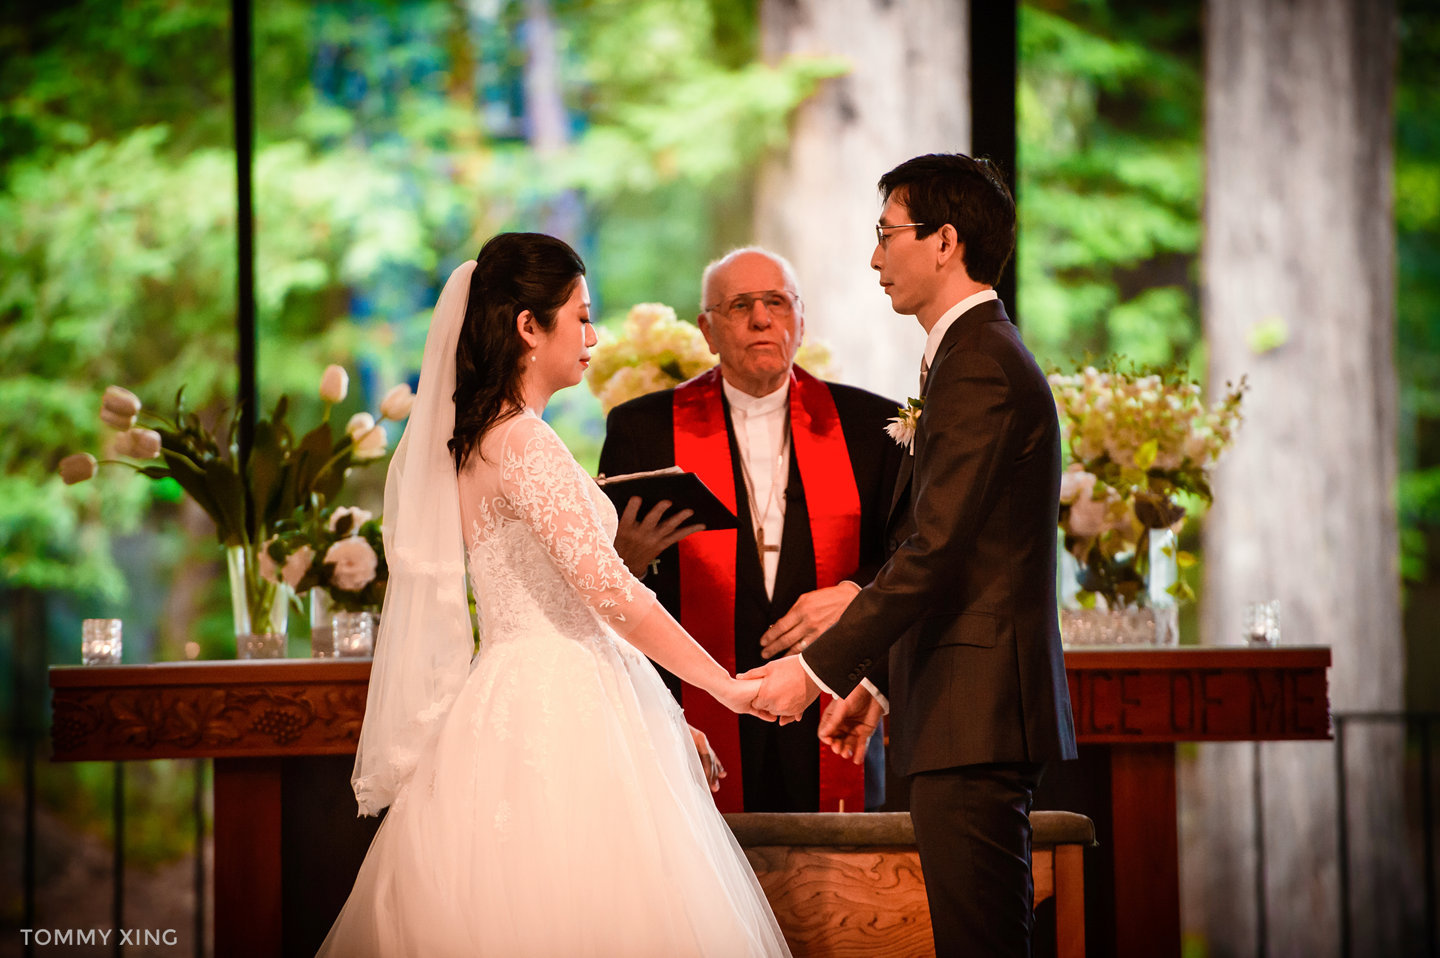 San Francisco Wedding Photography Valley Presbyterian Church WEDDING Tommy Xing Photography 洛杉矶旧金山婚礼婚纱照摄影师083.jpg